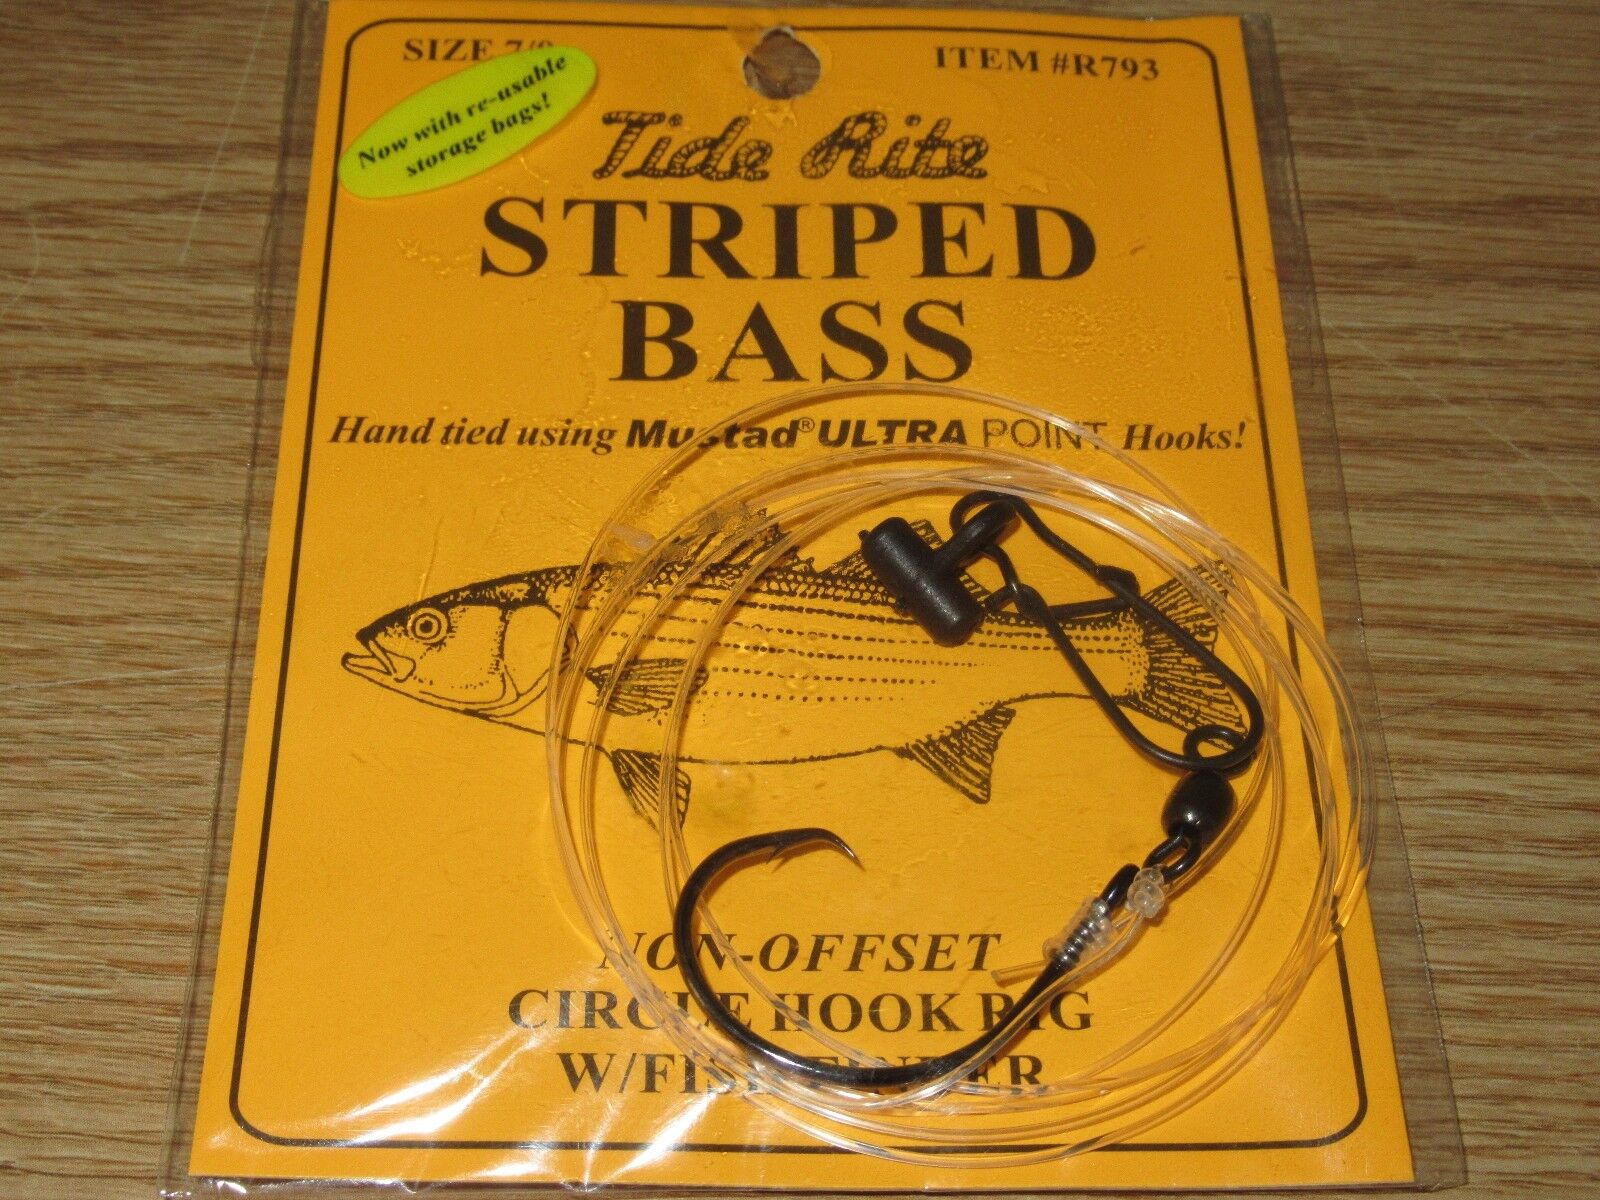 24 STRIPED BASS TIDE RITE R793 CIRCLE HOOK FISH FINDER RIG SALTWATER FISH RIGS